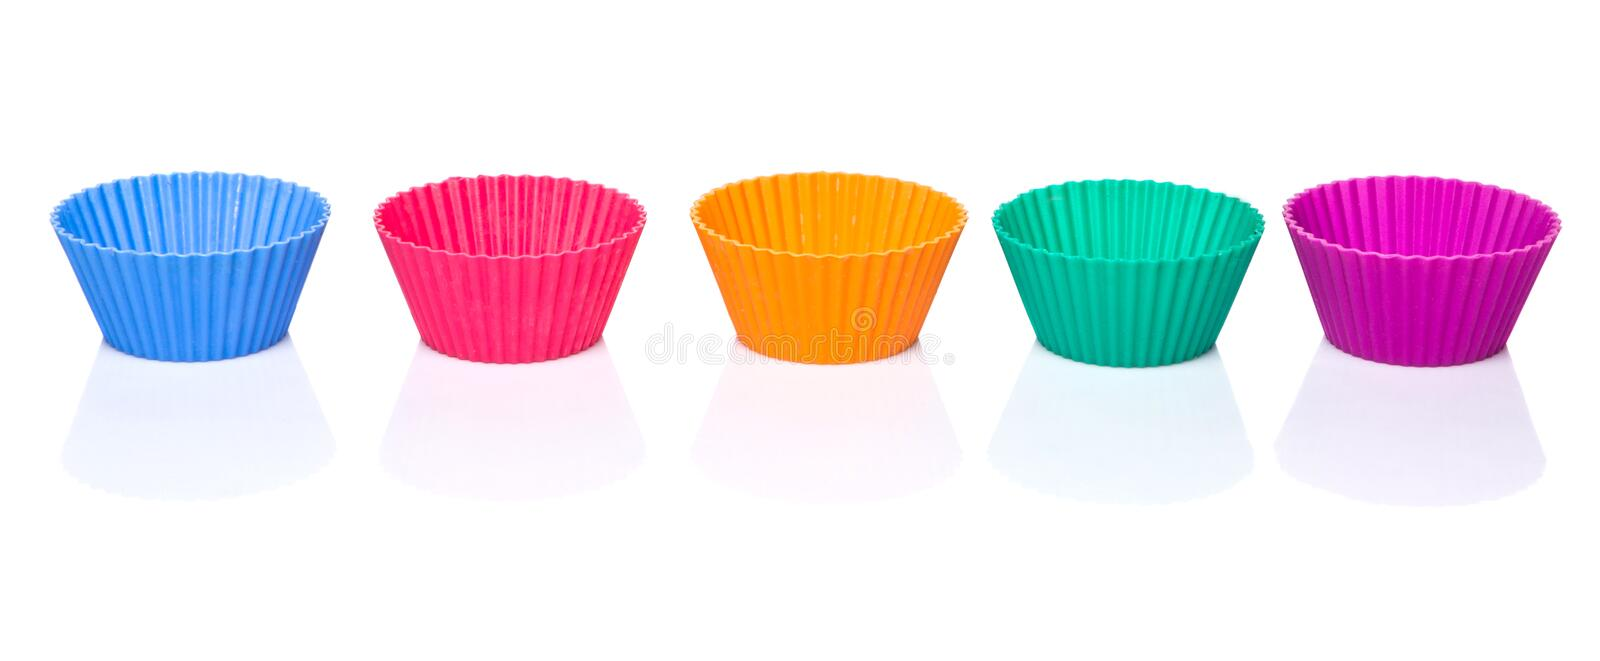 Row OF Silicone Cupcake Baking Cups III. Various colors of silicone cupcake silicone baking cups over white background stock photography